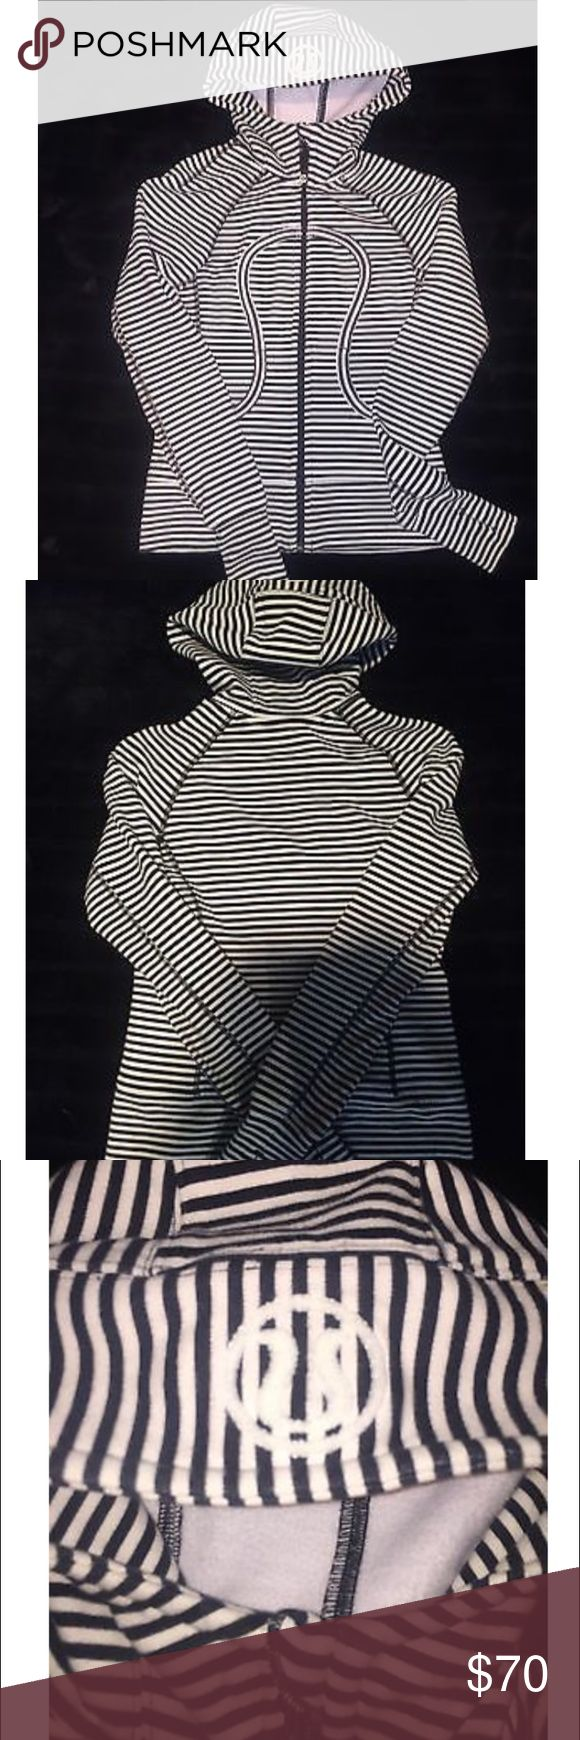 Lululemon Scuba Hoodie Striped Size 2 Lululemon Scuba Hoodie Black and White Striped Size 2. Great pre-owned condition showing light signs of wear from wash. lululemon athletica Tops Sweatshirts & Hoodies